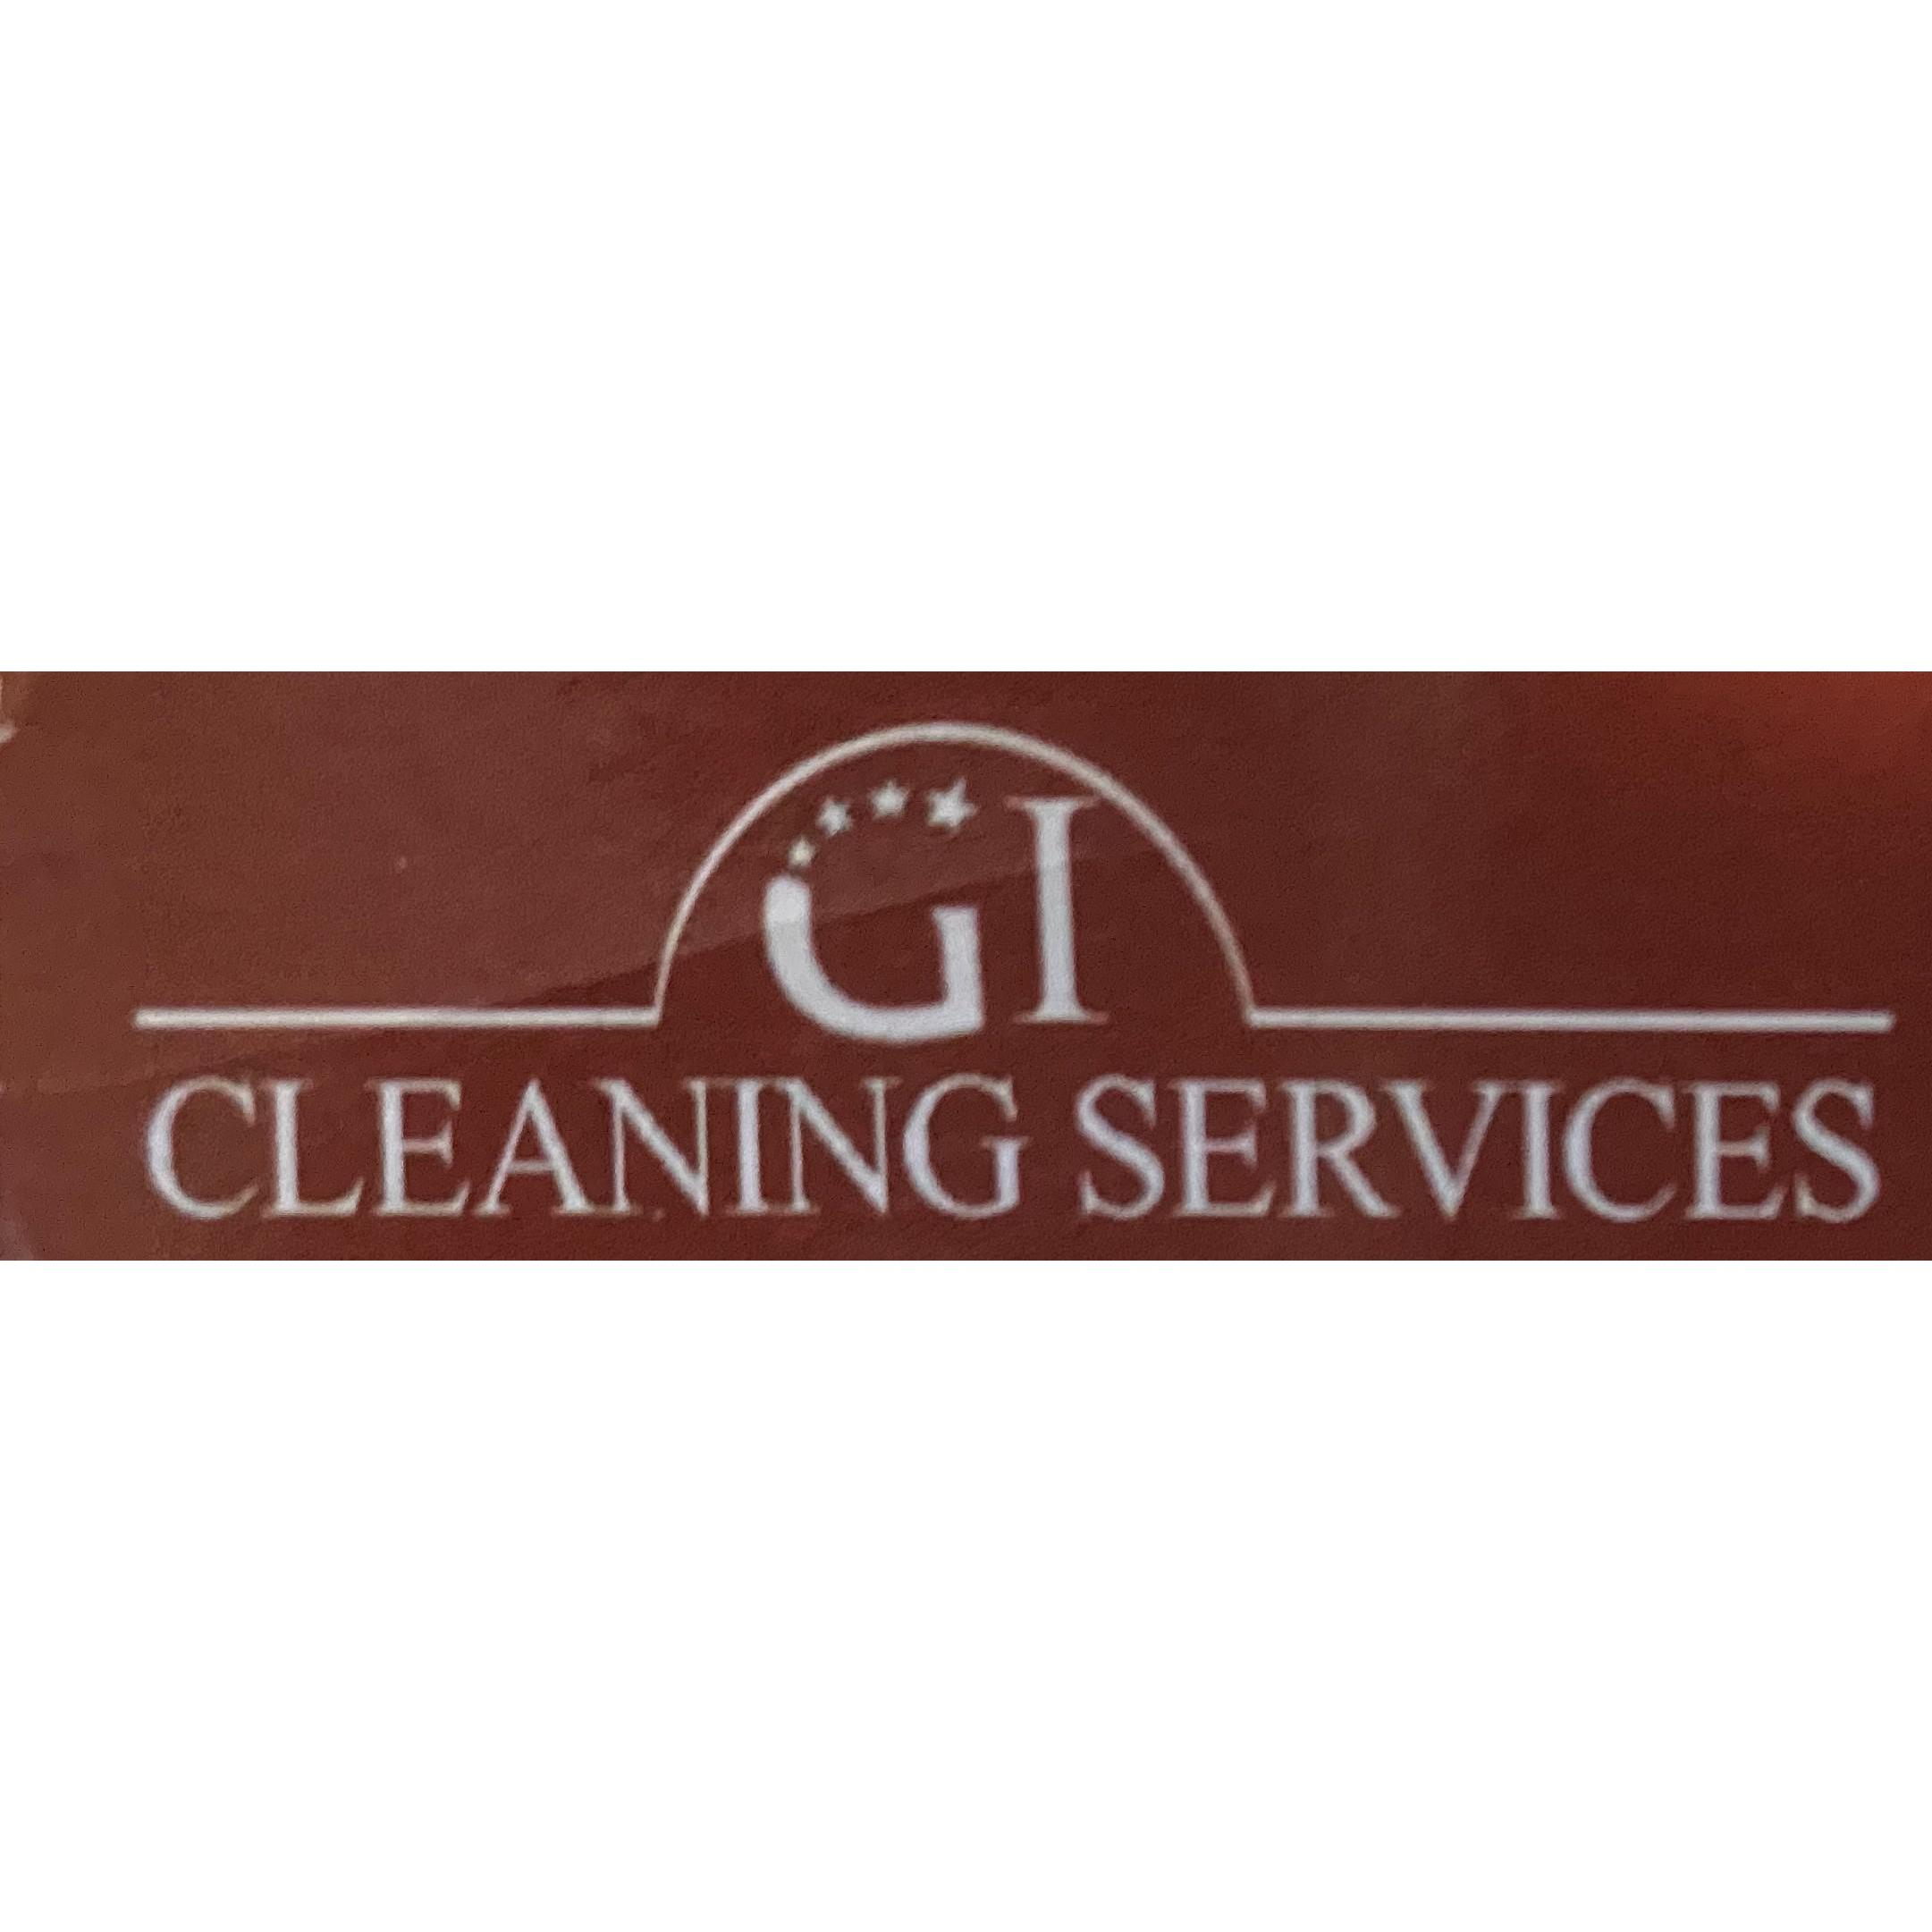 G.I Cleaning service Logo